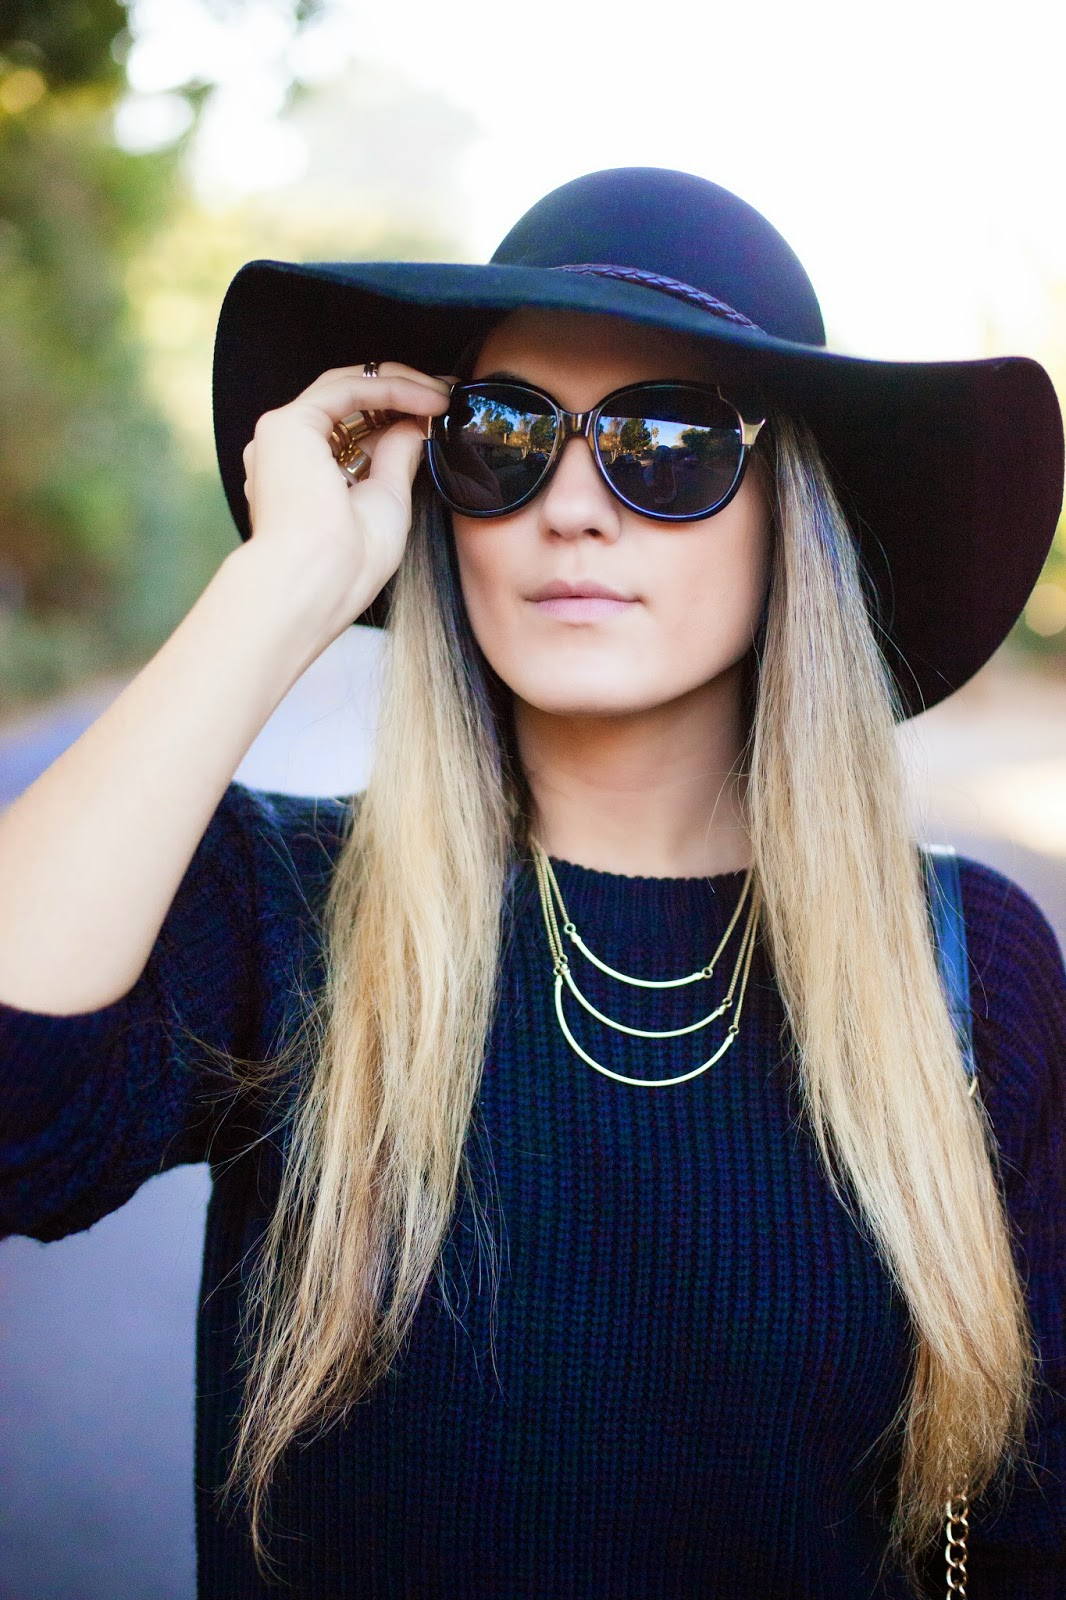 black knit sweater and hat